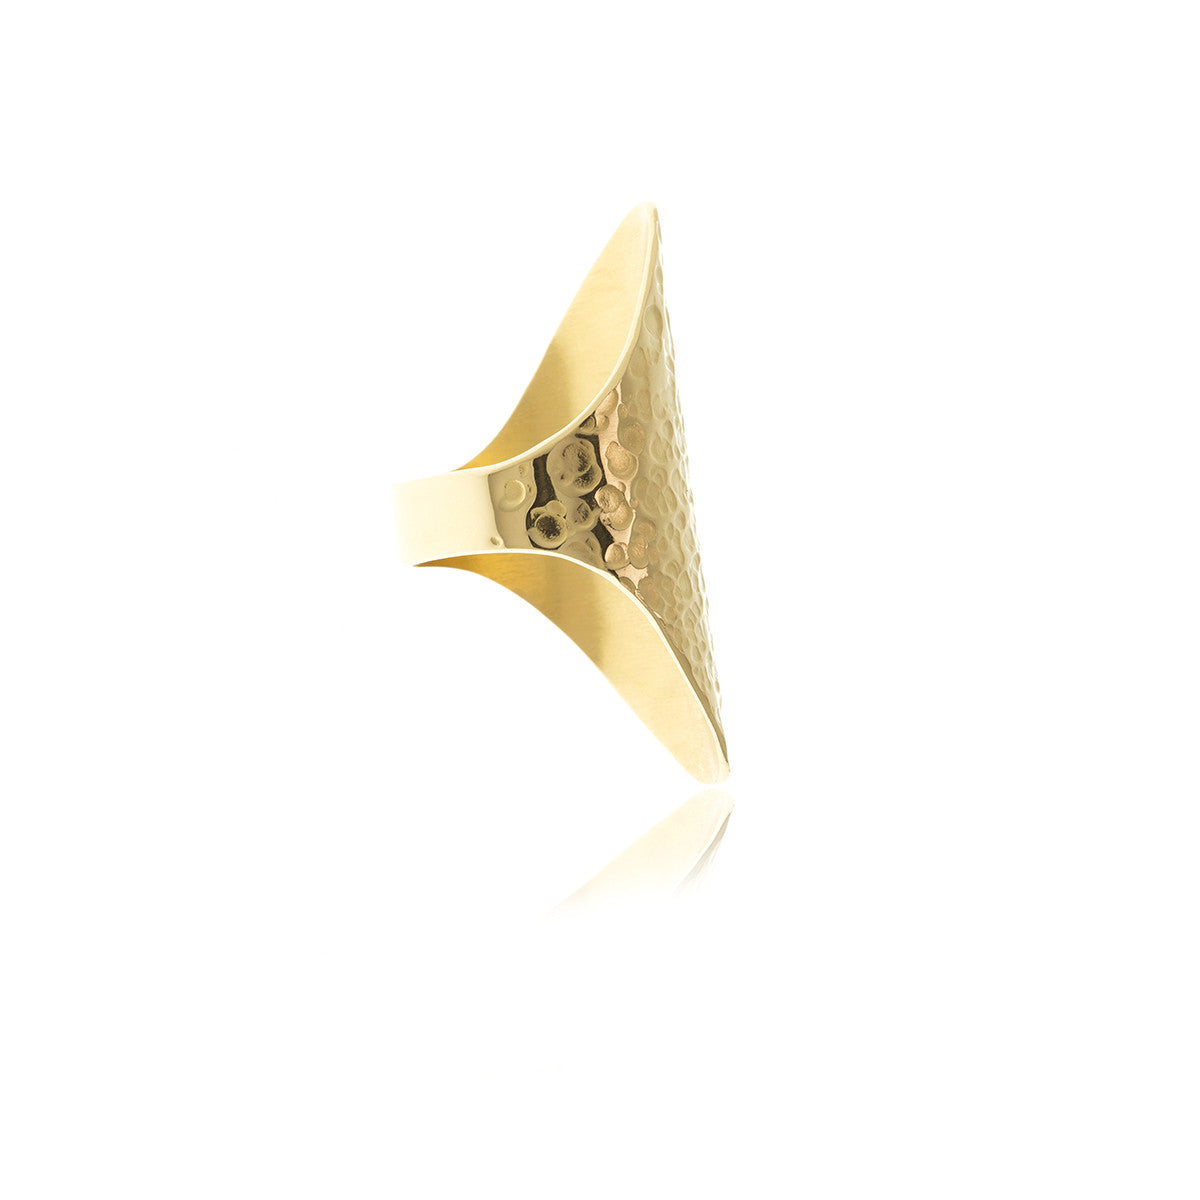 Sidereal Gold Hammered Ring - Georgina Jewelry